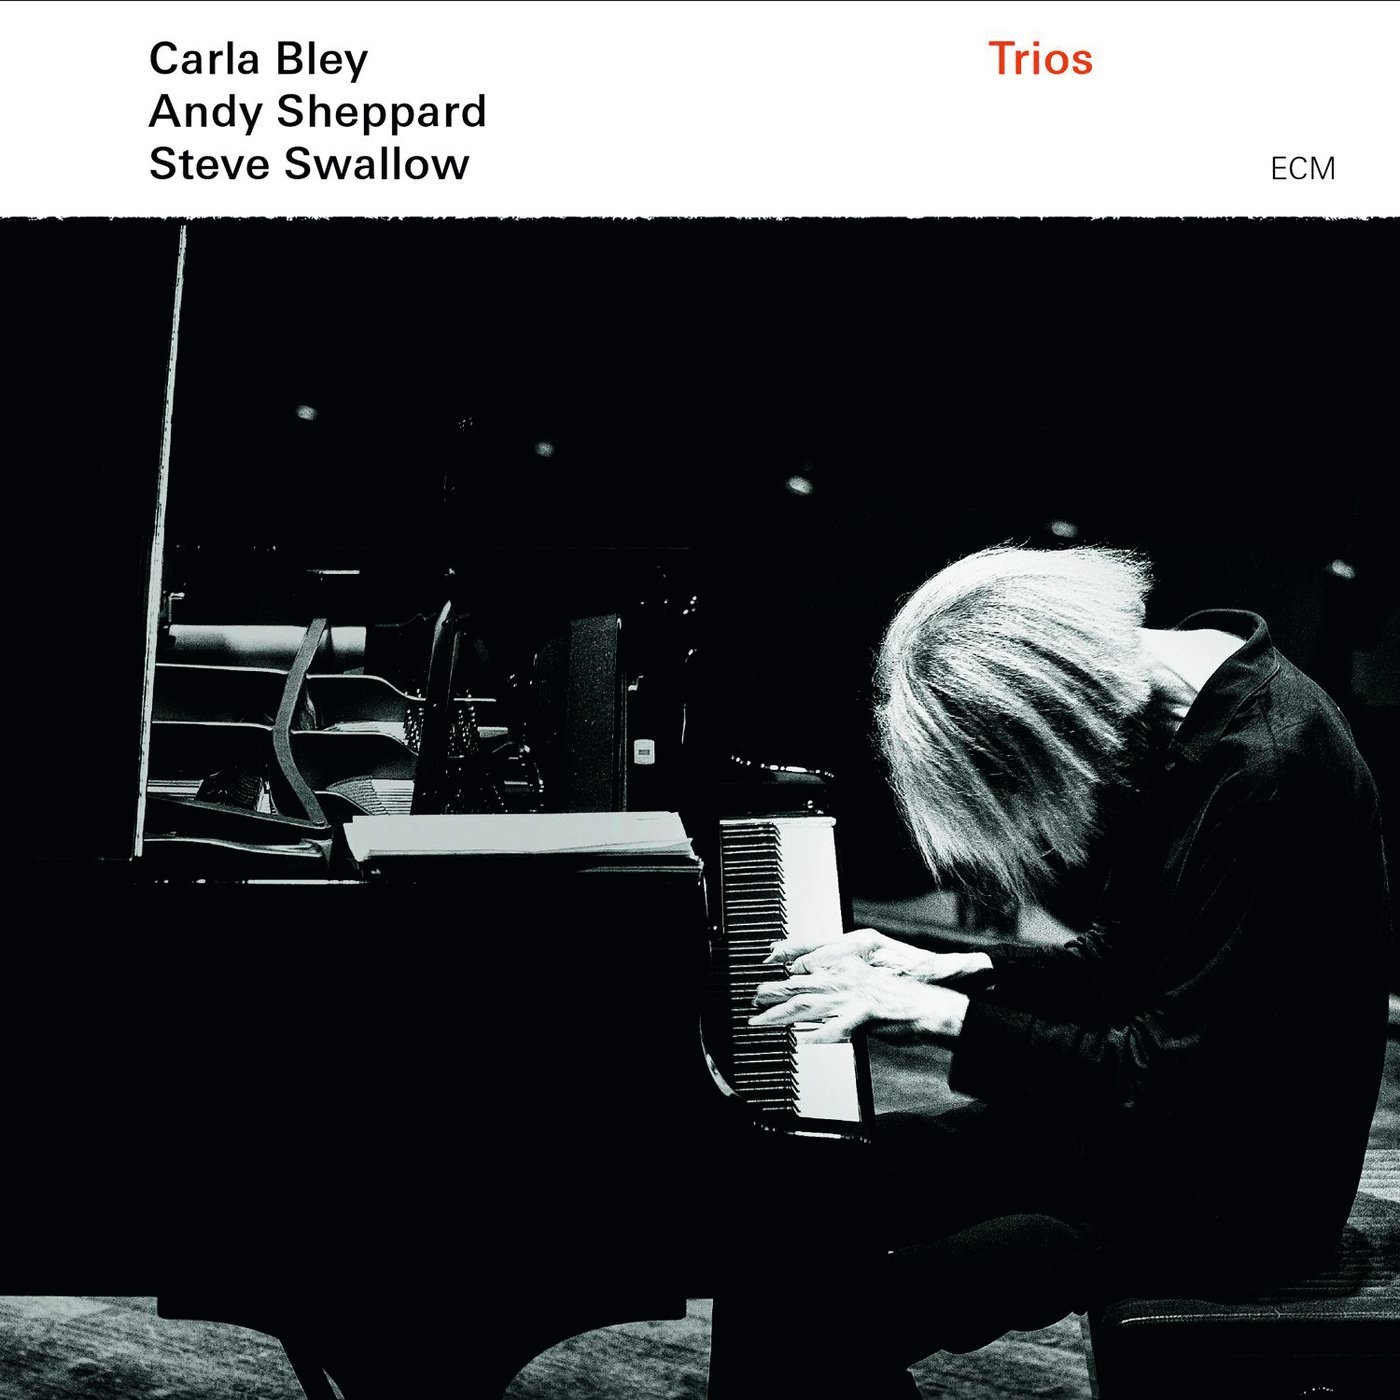 Carla Bley, Andy Sheppard, Steve Swallow - Trios (2013) [Official Digital Download 24/88]